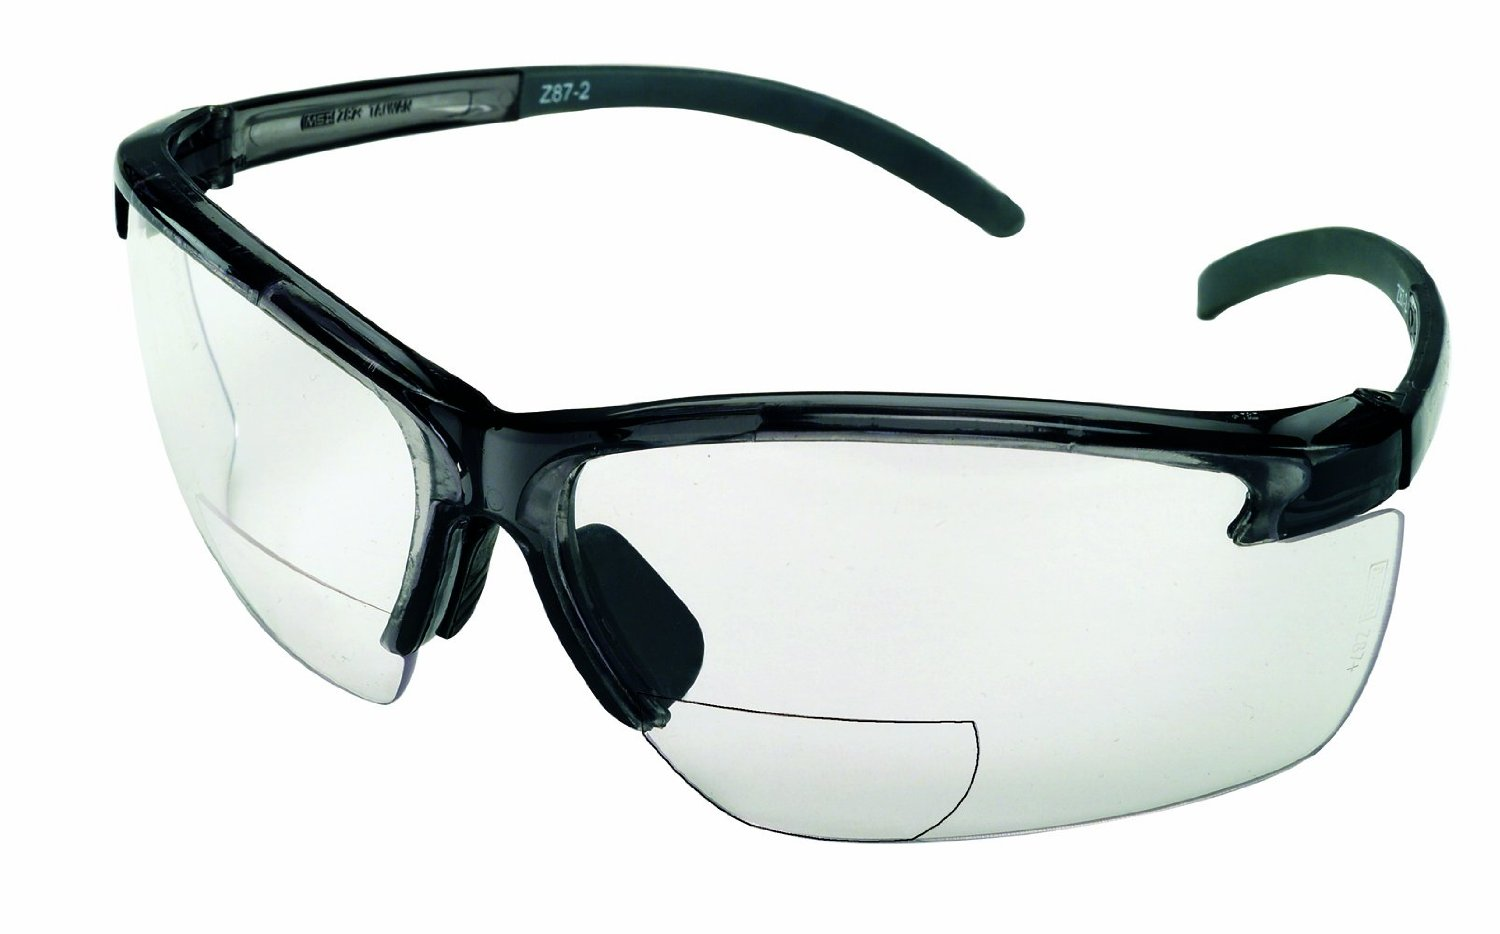 MSA Safety Glasses with 2.0 Diopeter